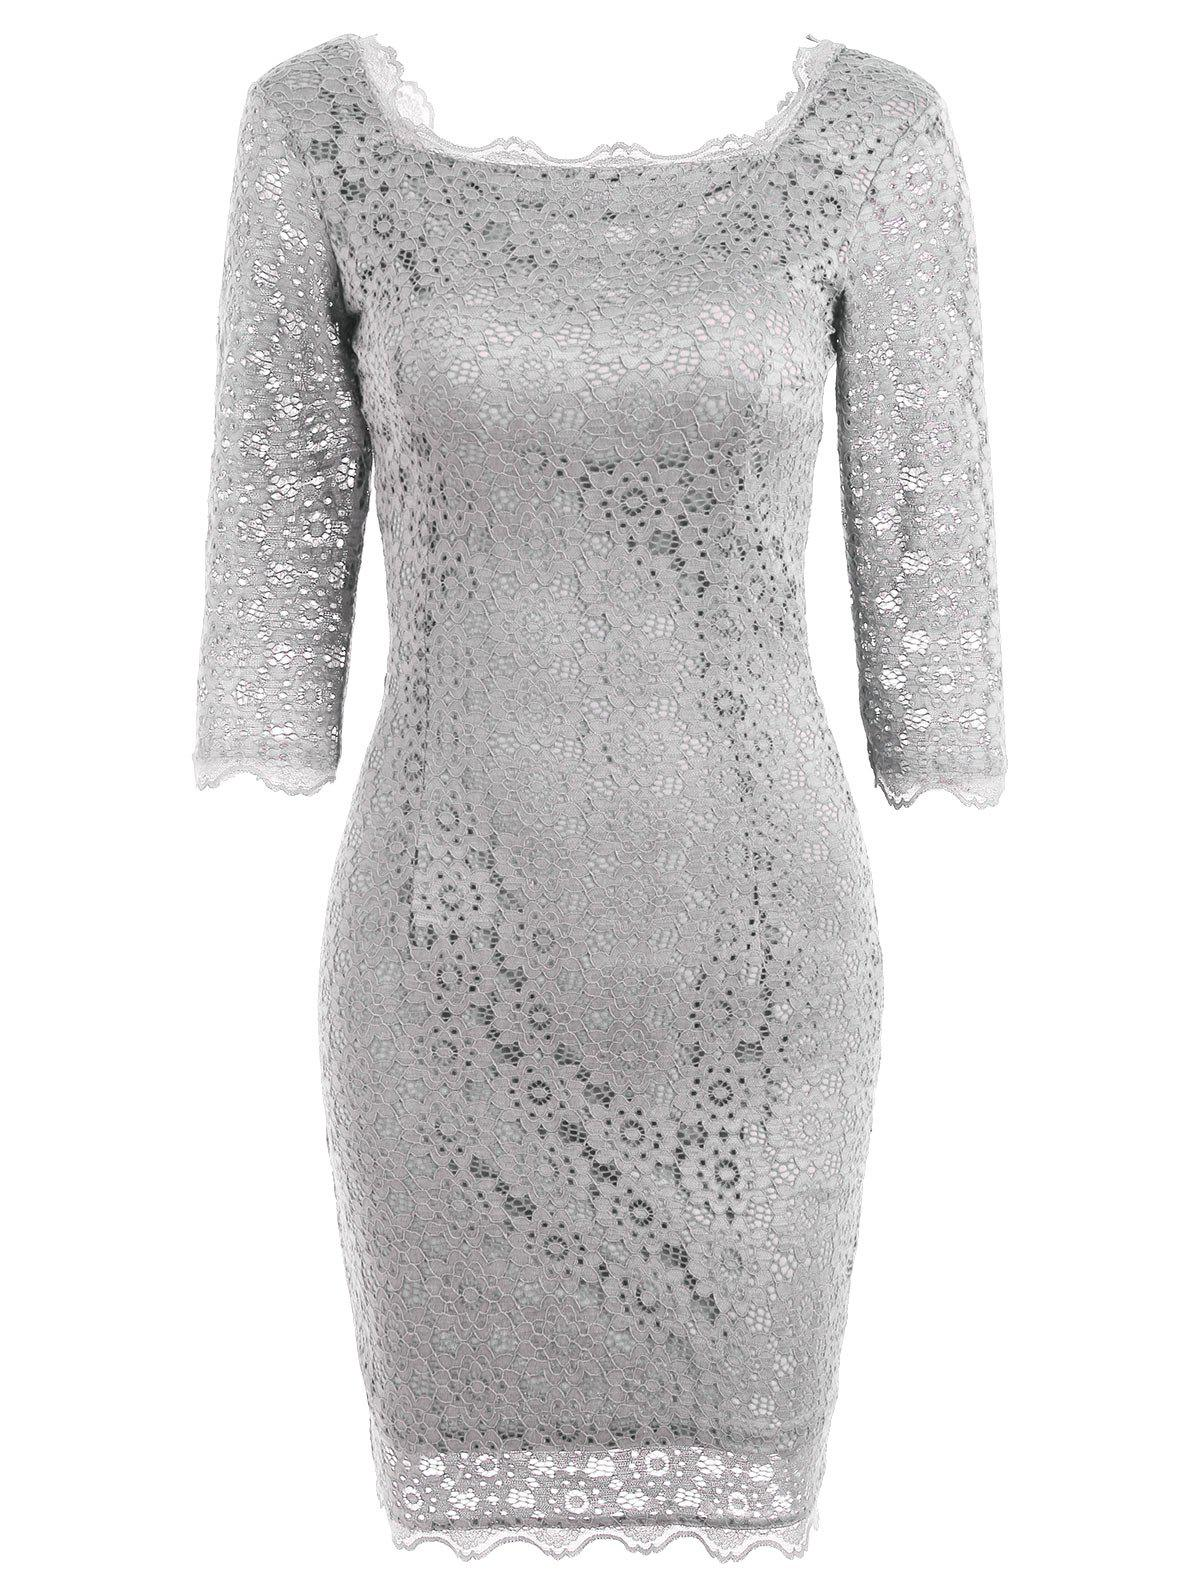 Cut Out Lace Bodycon Party Dress - LIGHT GRAY XL